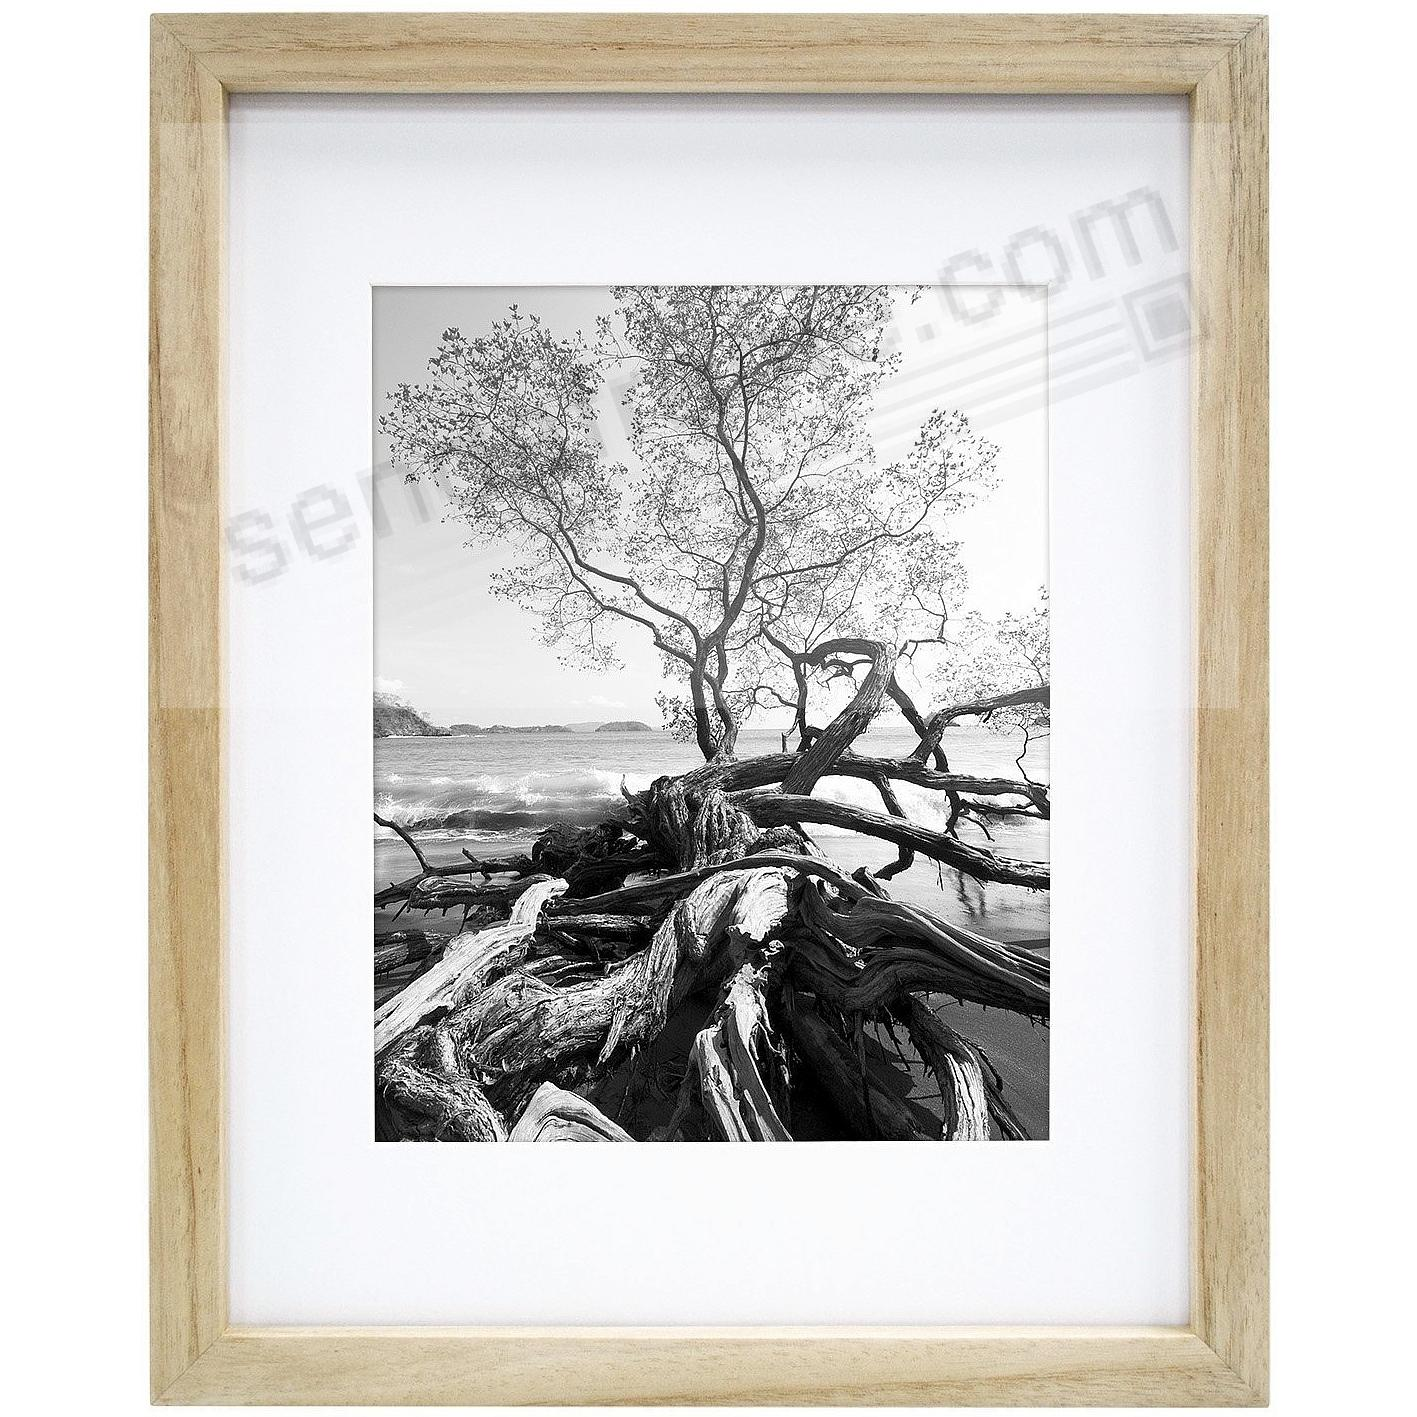 Art Shadow-Box ¾in depth Natural Wood 11x14/8x10 frame by MCS®